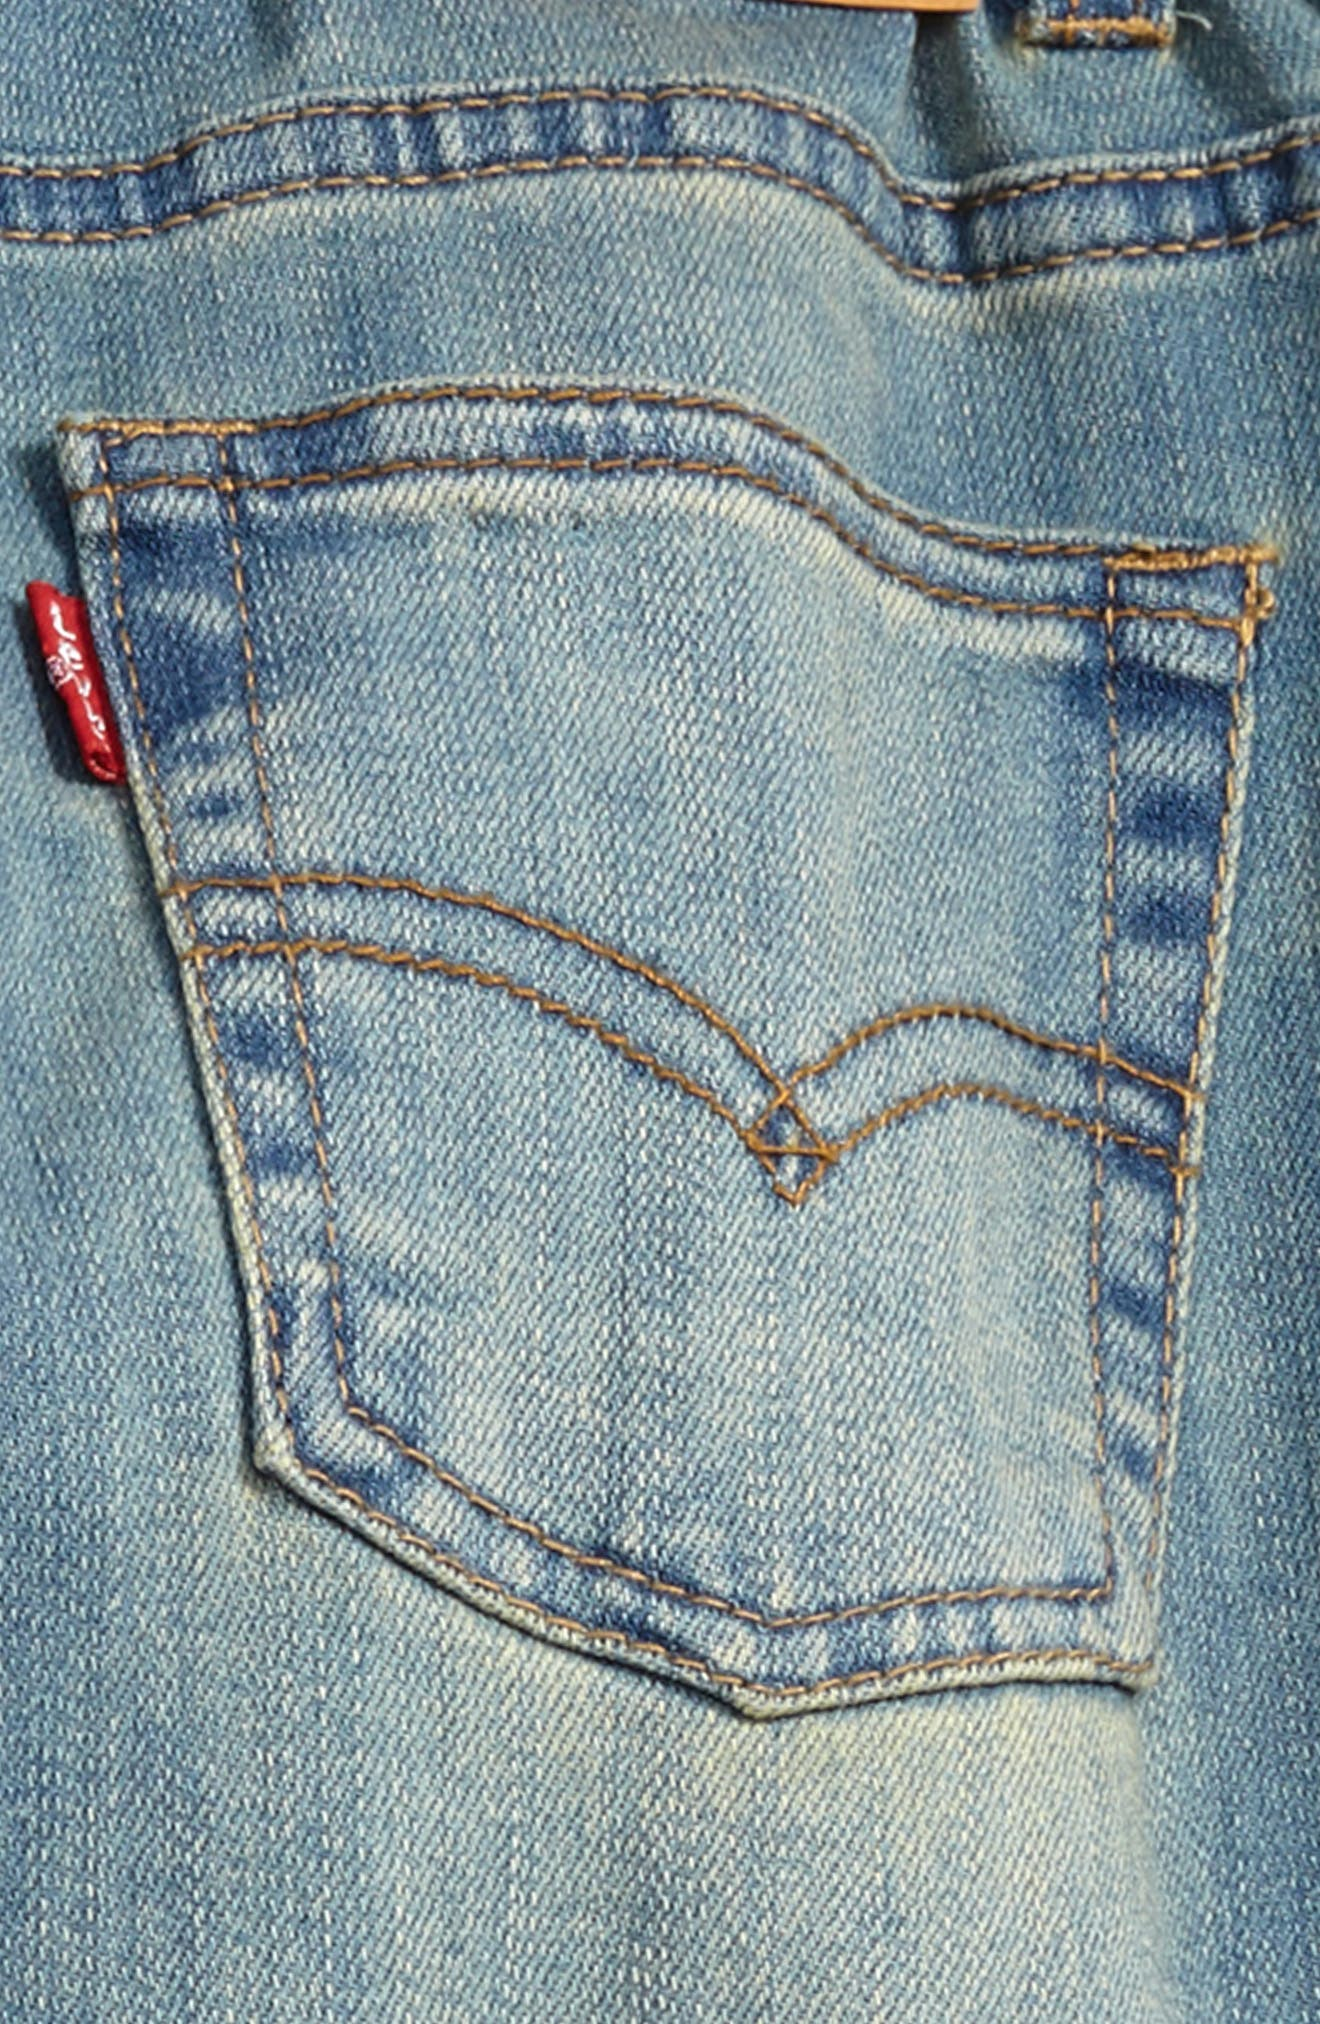 Alternate Image 3  - Levi's® Comfort Slim Fit Jeans (Toddler Boys & Little Boys)